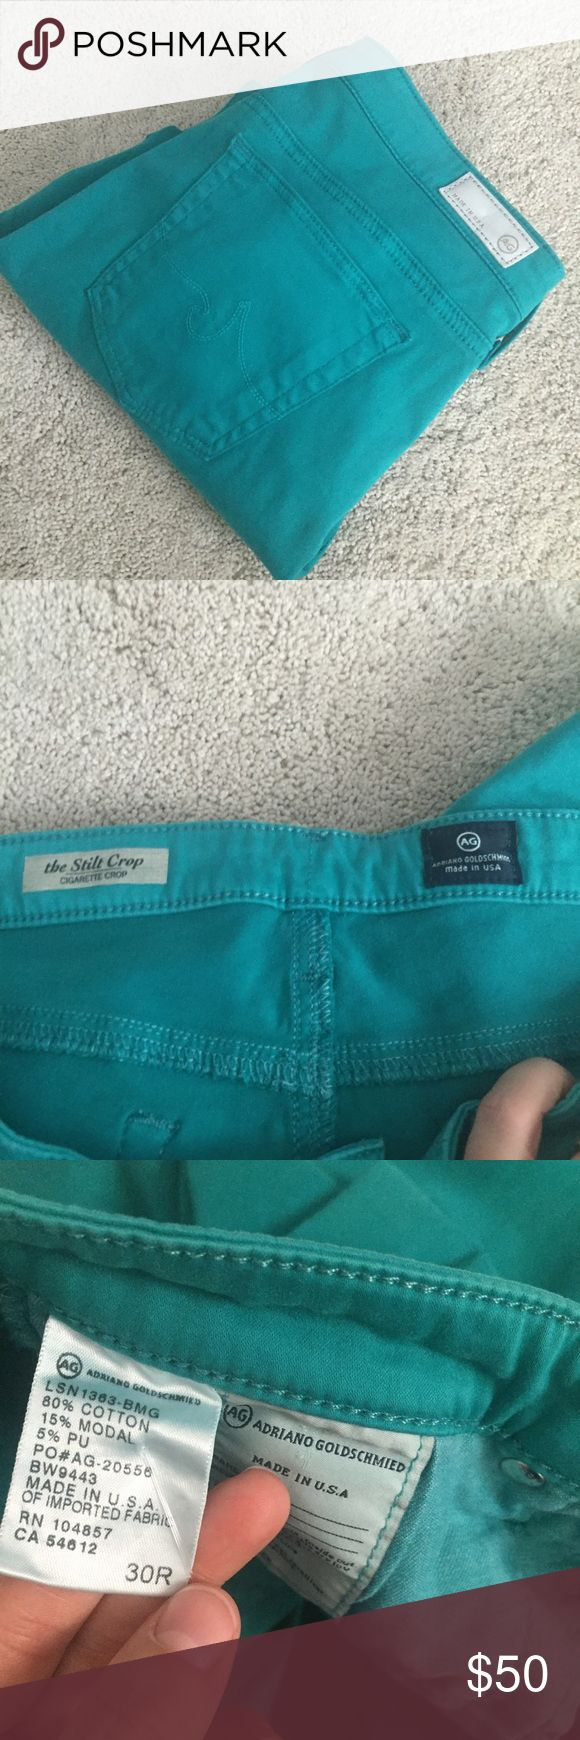 """Adriano goldschmied jeans Pretty teal colored Adriano goldschmied the stilt crop jeans. Perfect for spring and summer!  Inseam approx 25"""" as shown. AG Adriano Goldschmied Jeans Ankle & Cropped"""